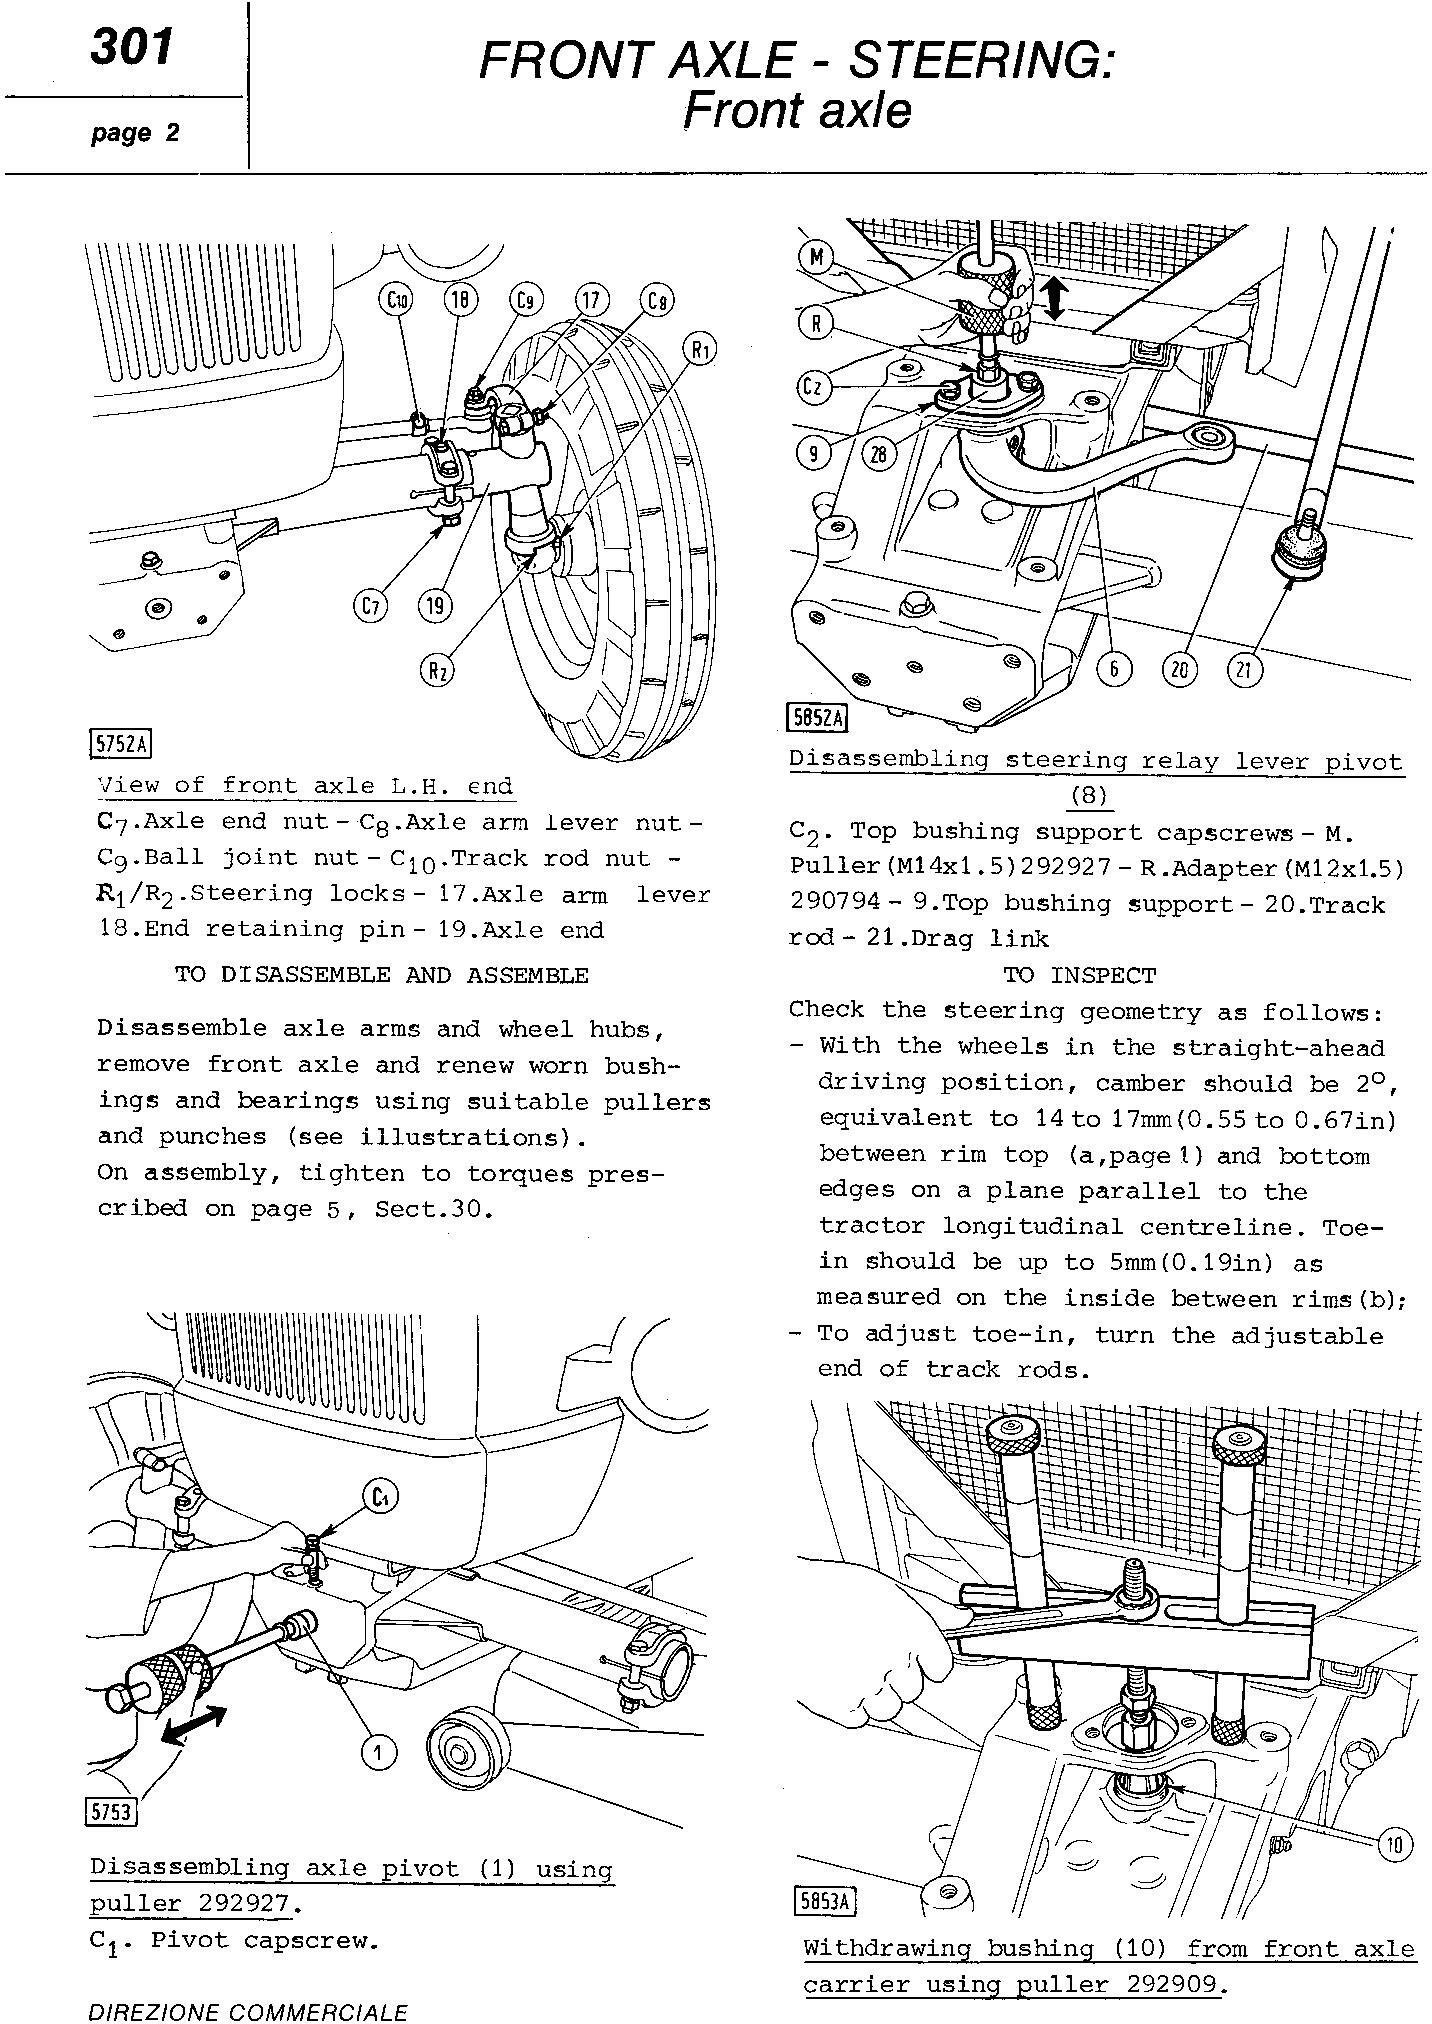 Fiat 450, 450S, 450 DT, 450 DTS Tractor Service Manual (6035420300) - 3